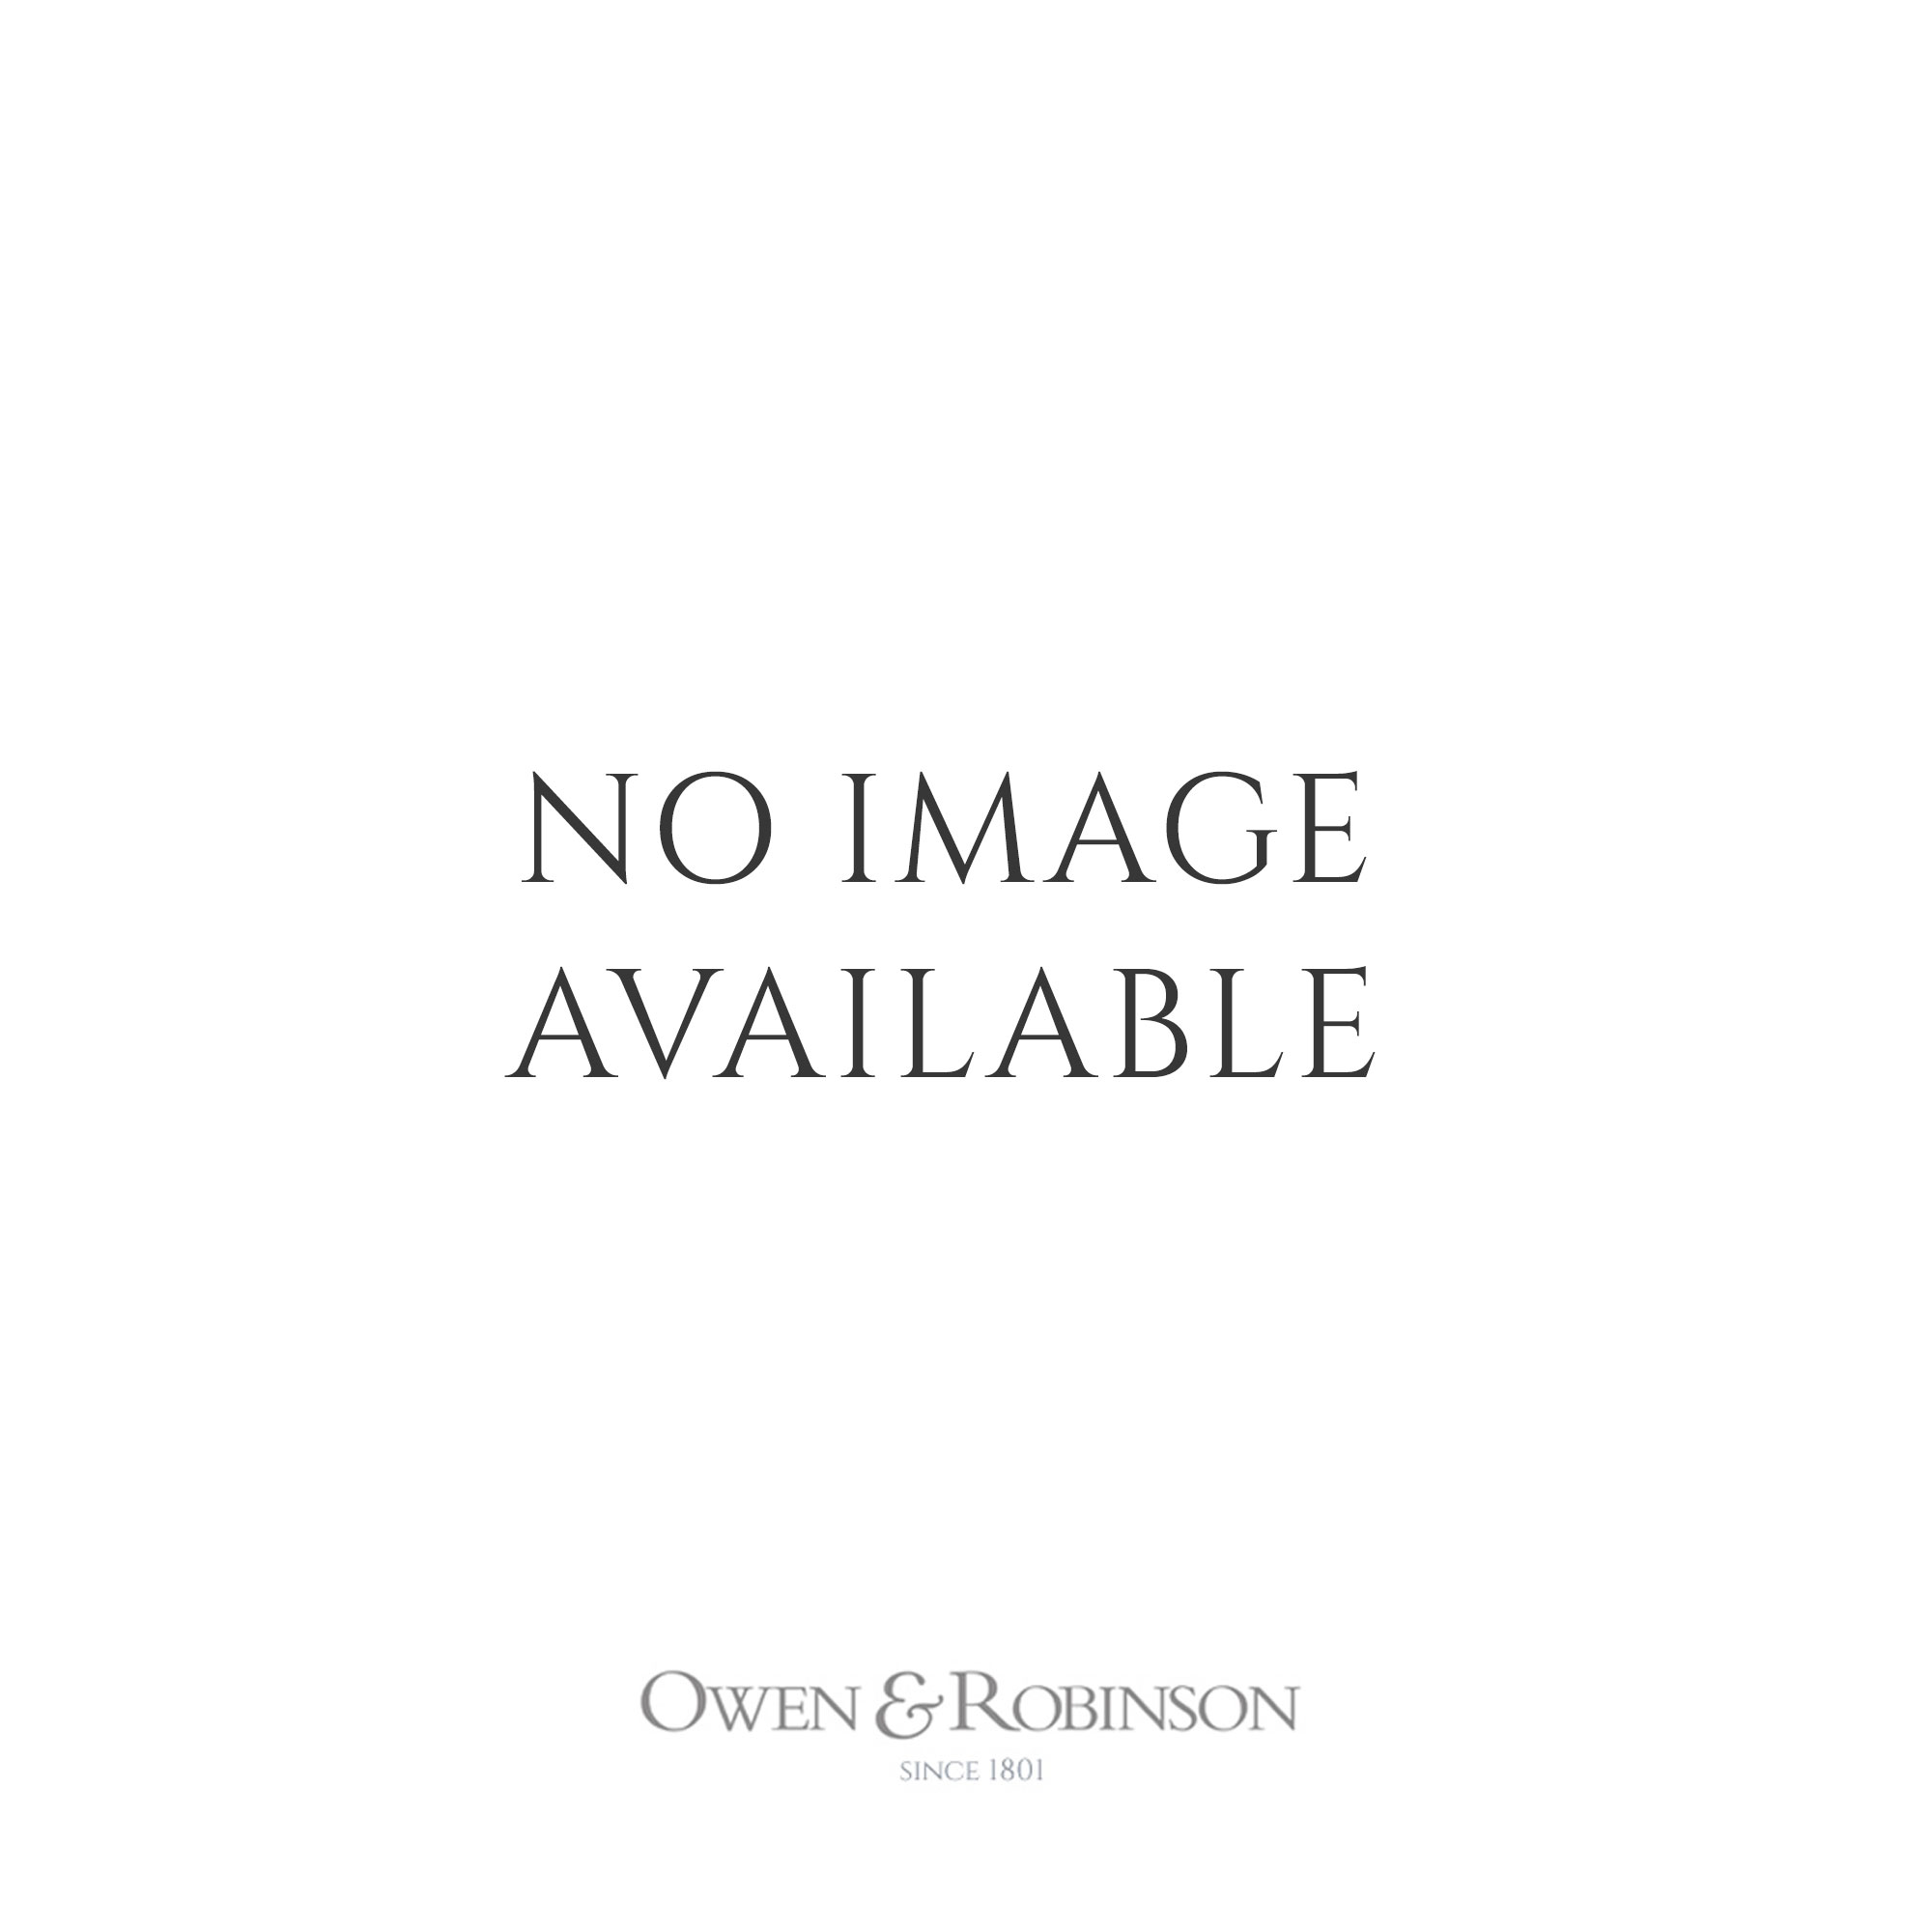 Dunhill Gentlemen's Sentryman Wallet in Black Leather